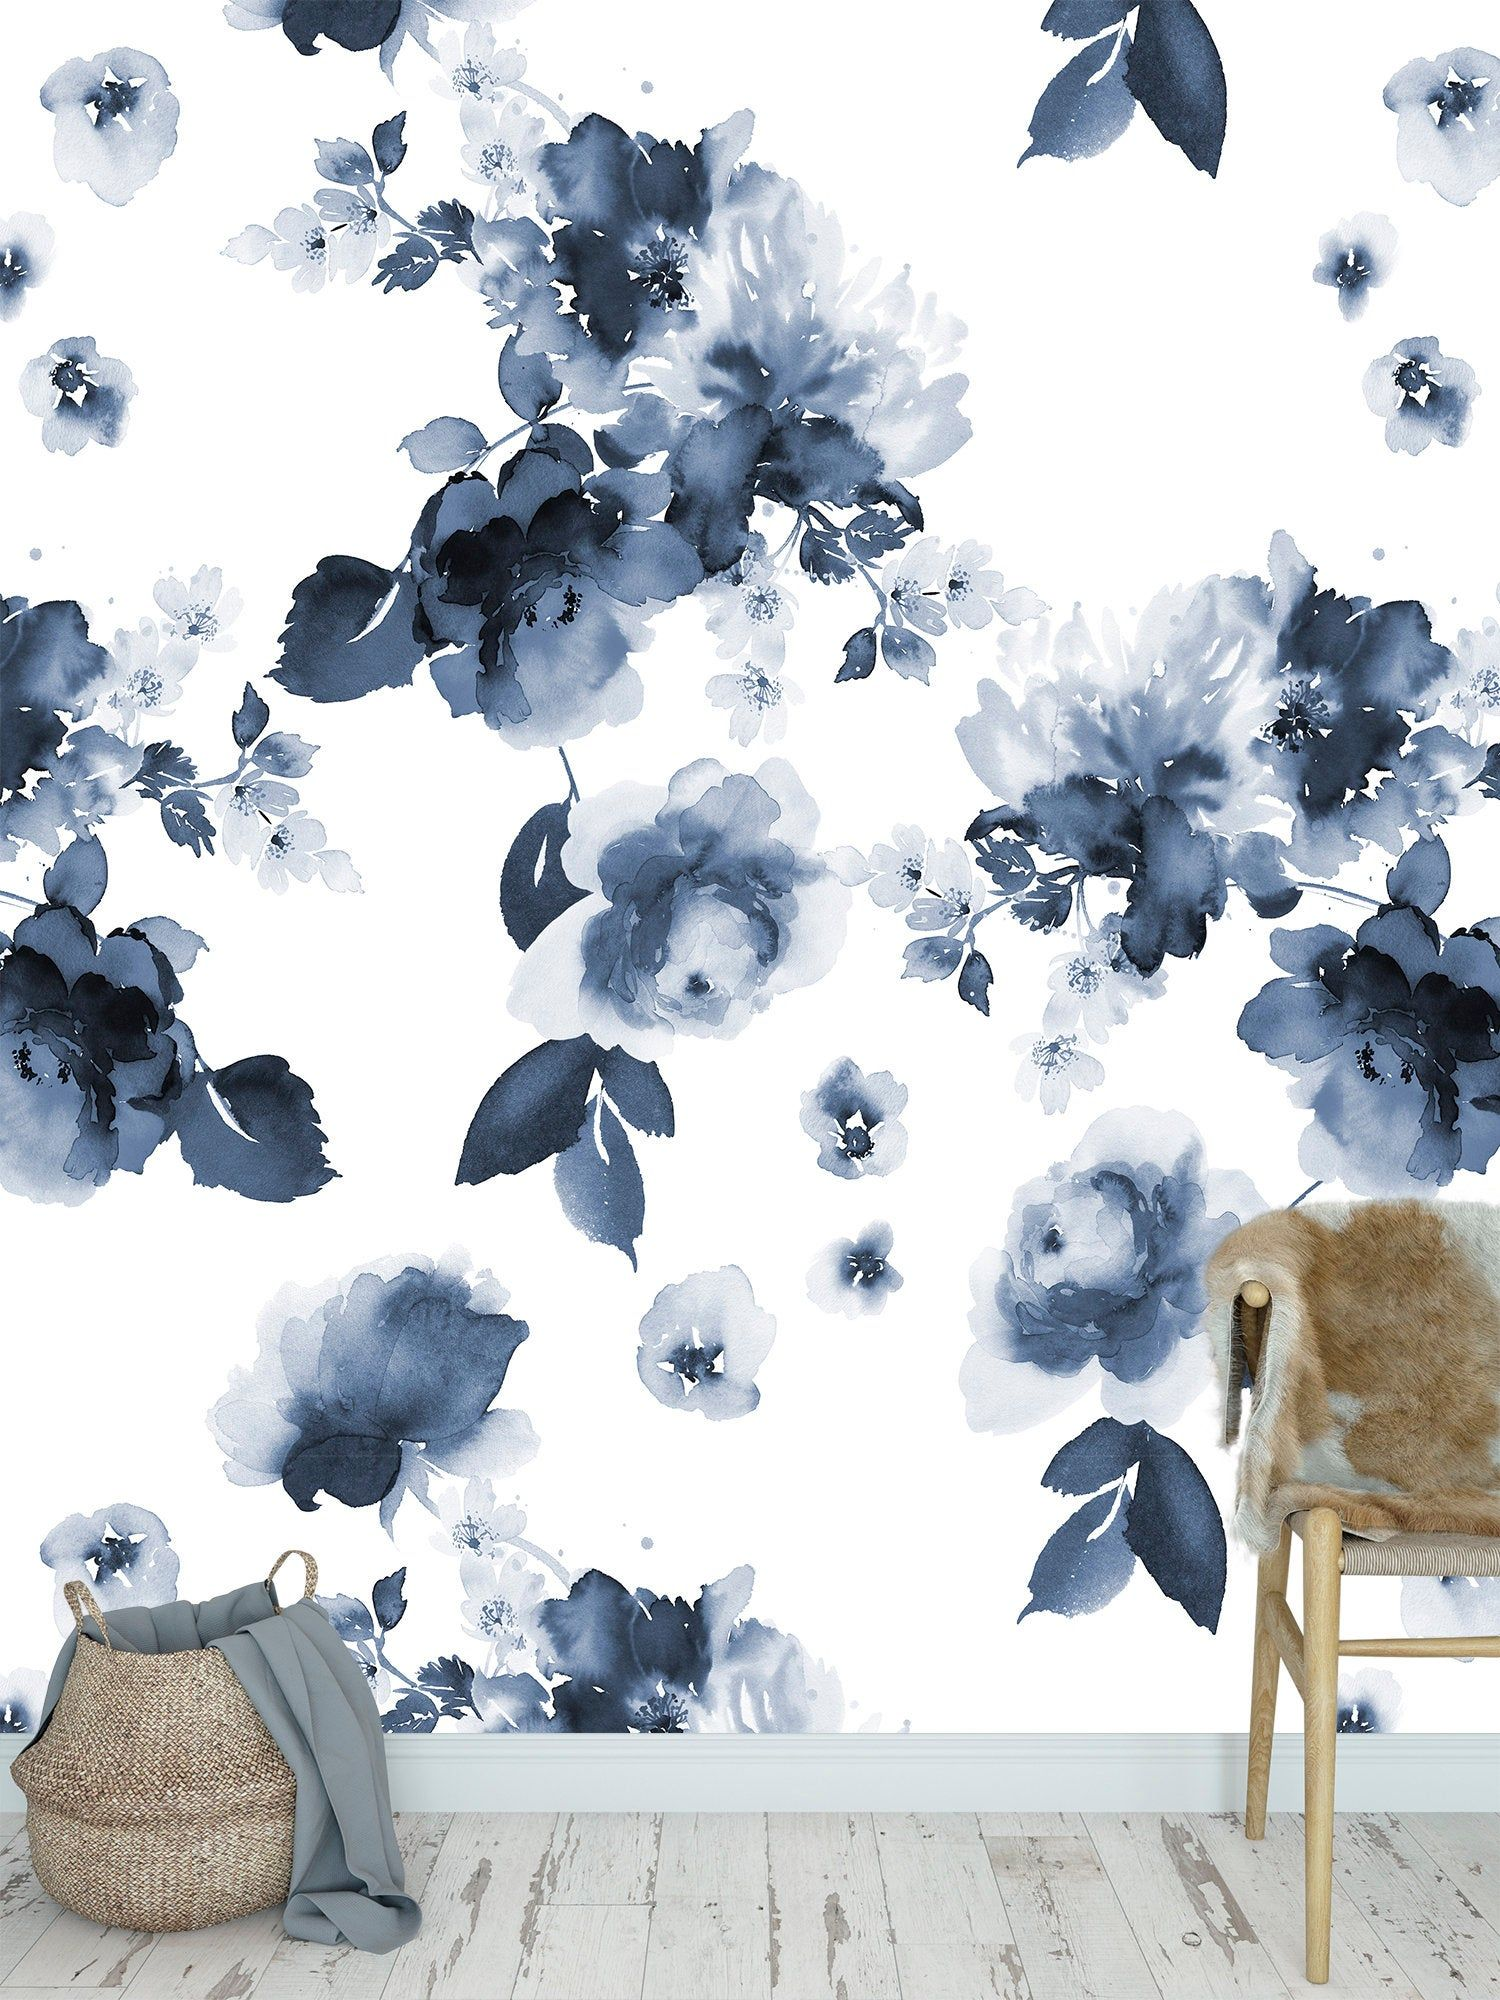 High Quality Peel And Stick Removable Self Adhesive Wallpaper Blue Watercolor Flower Watercolor Flowers Pattern Blue Floral Wallpaper Self Adhesive Wallpaper